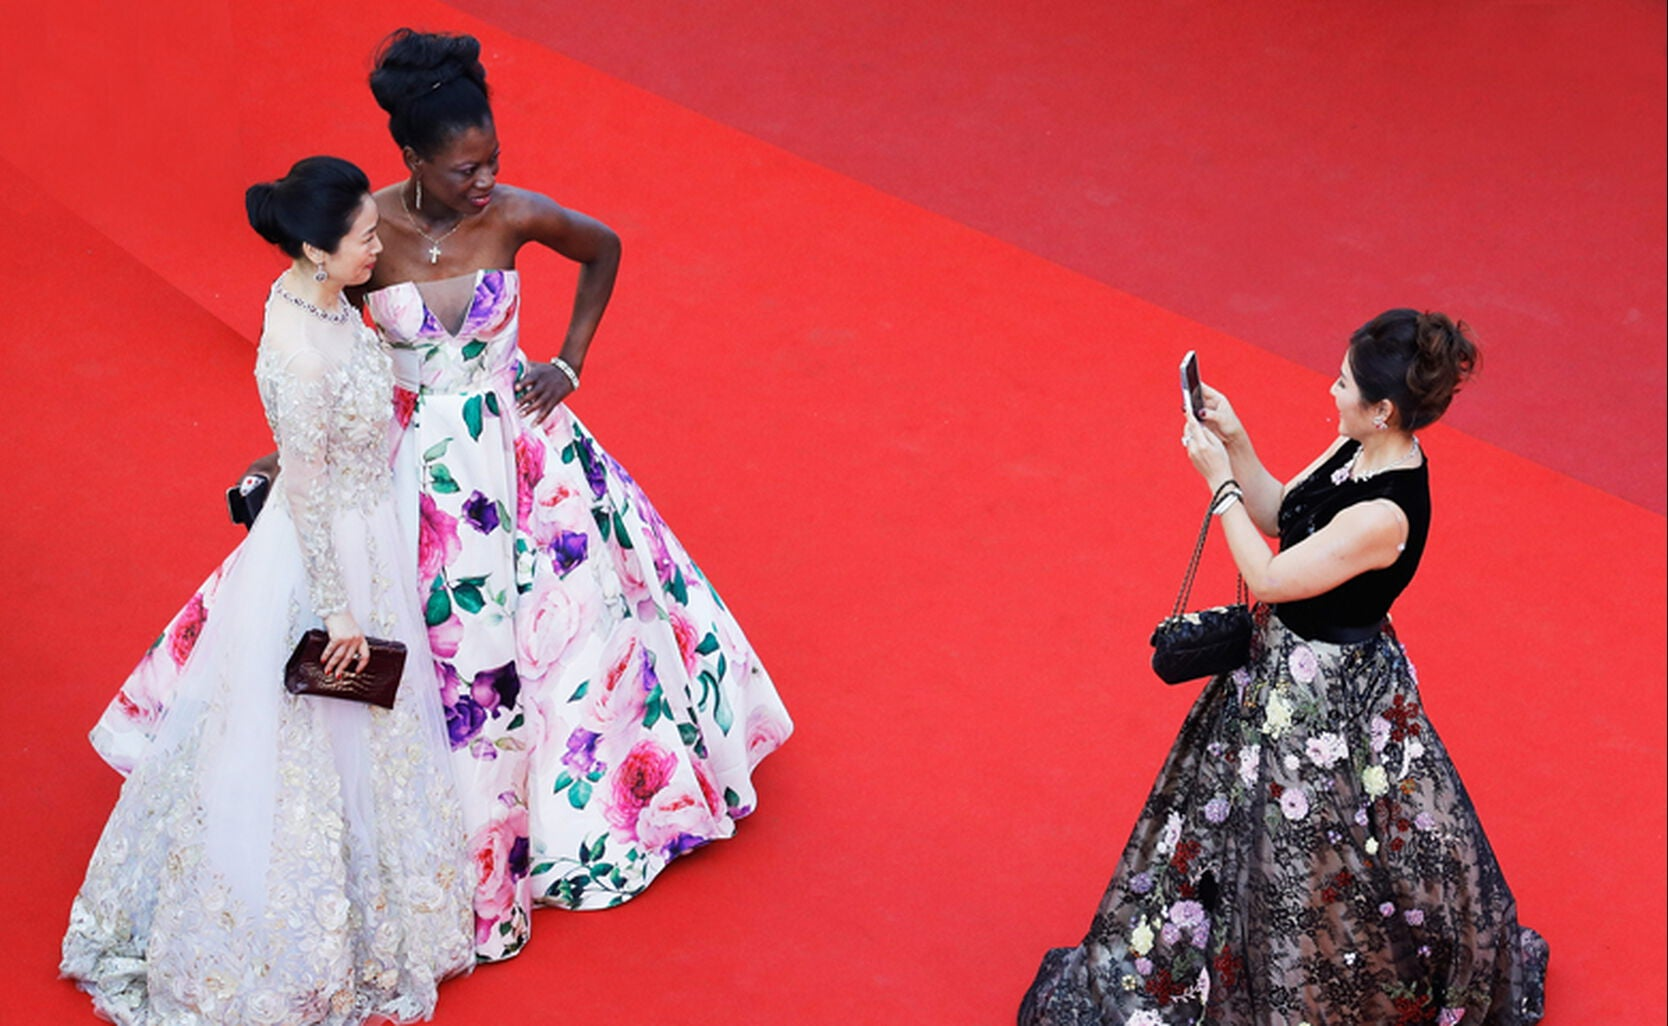 Guests at Cannes 2017